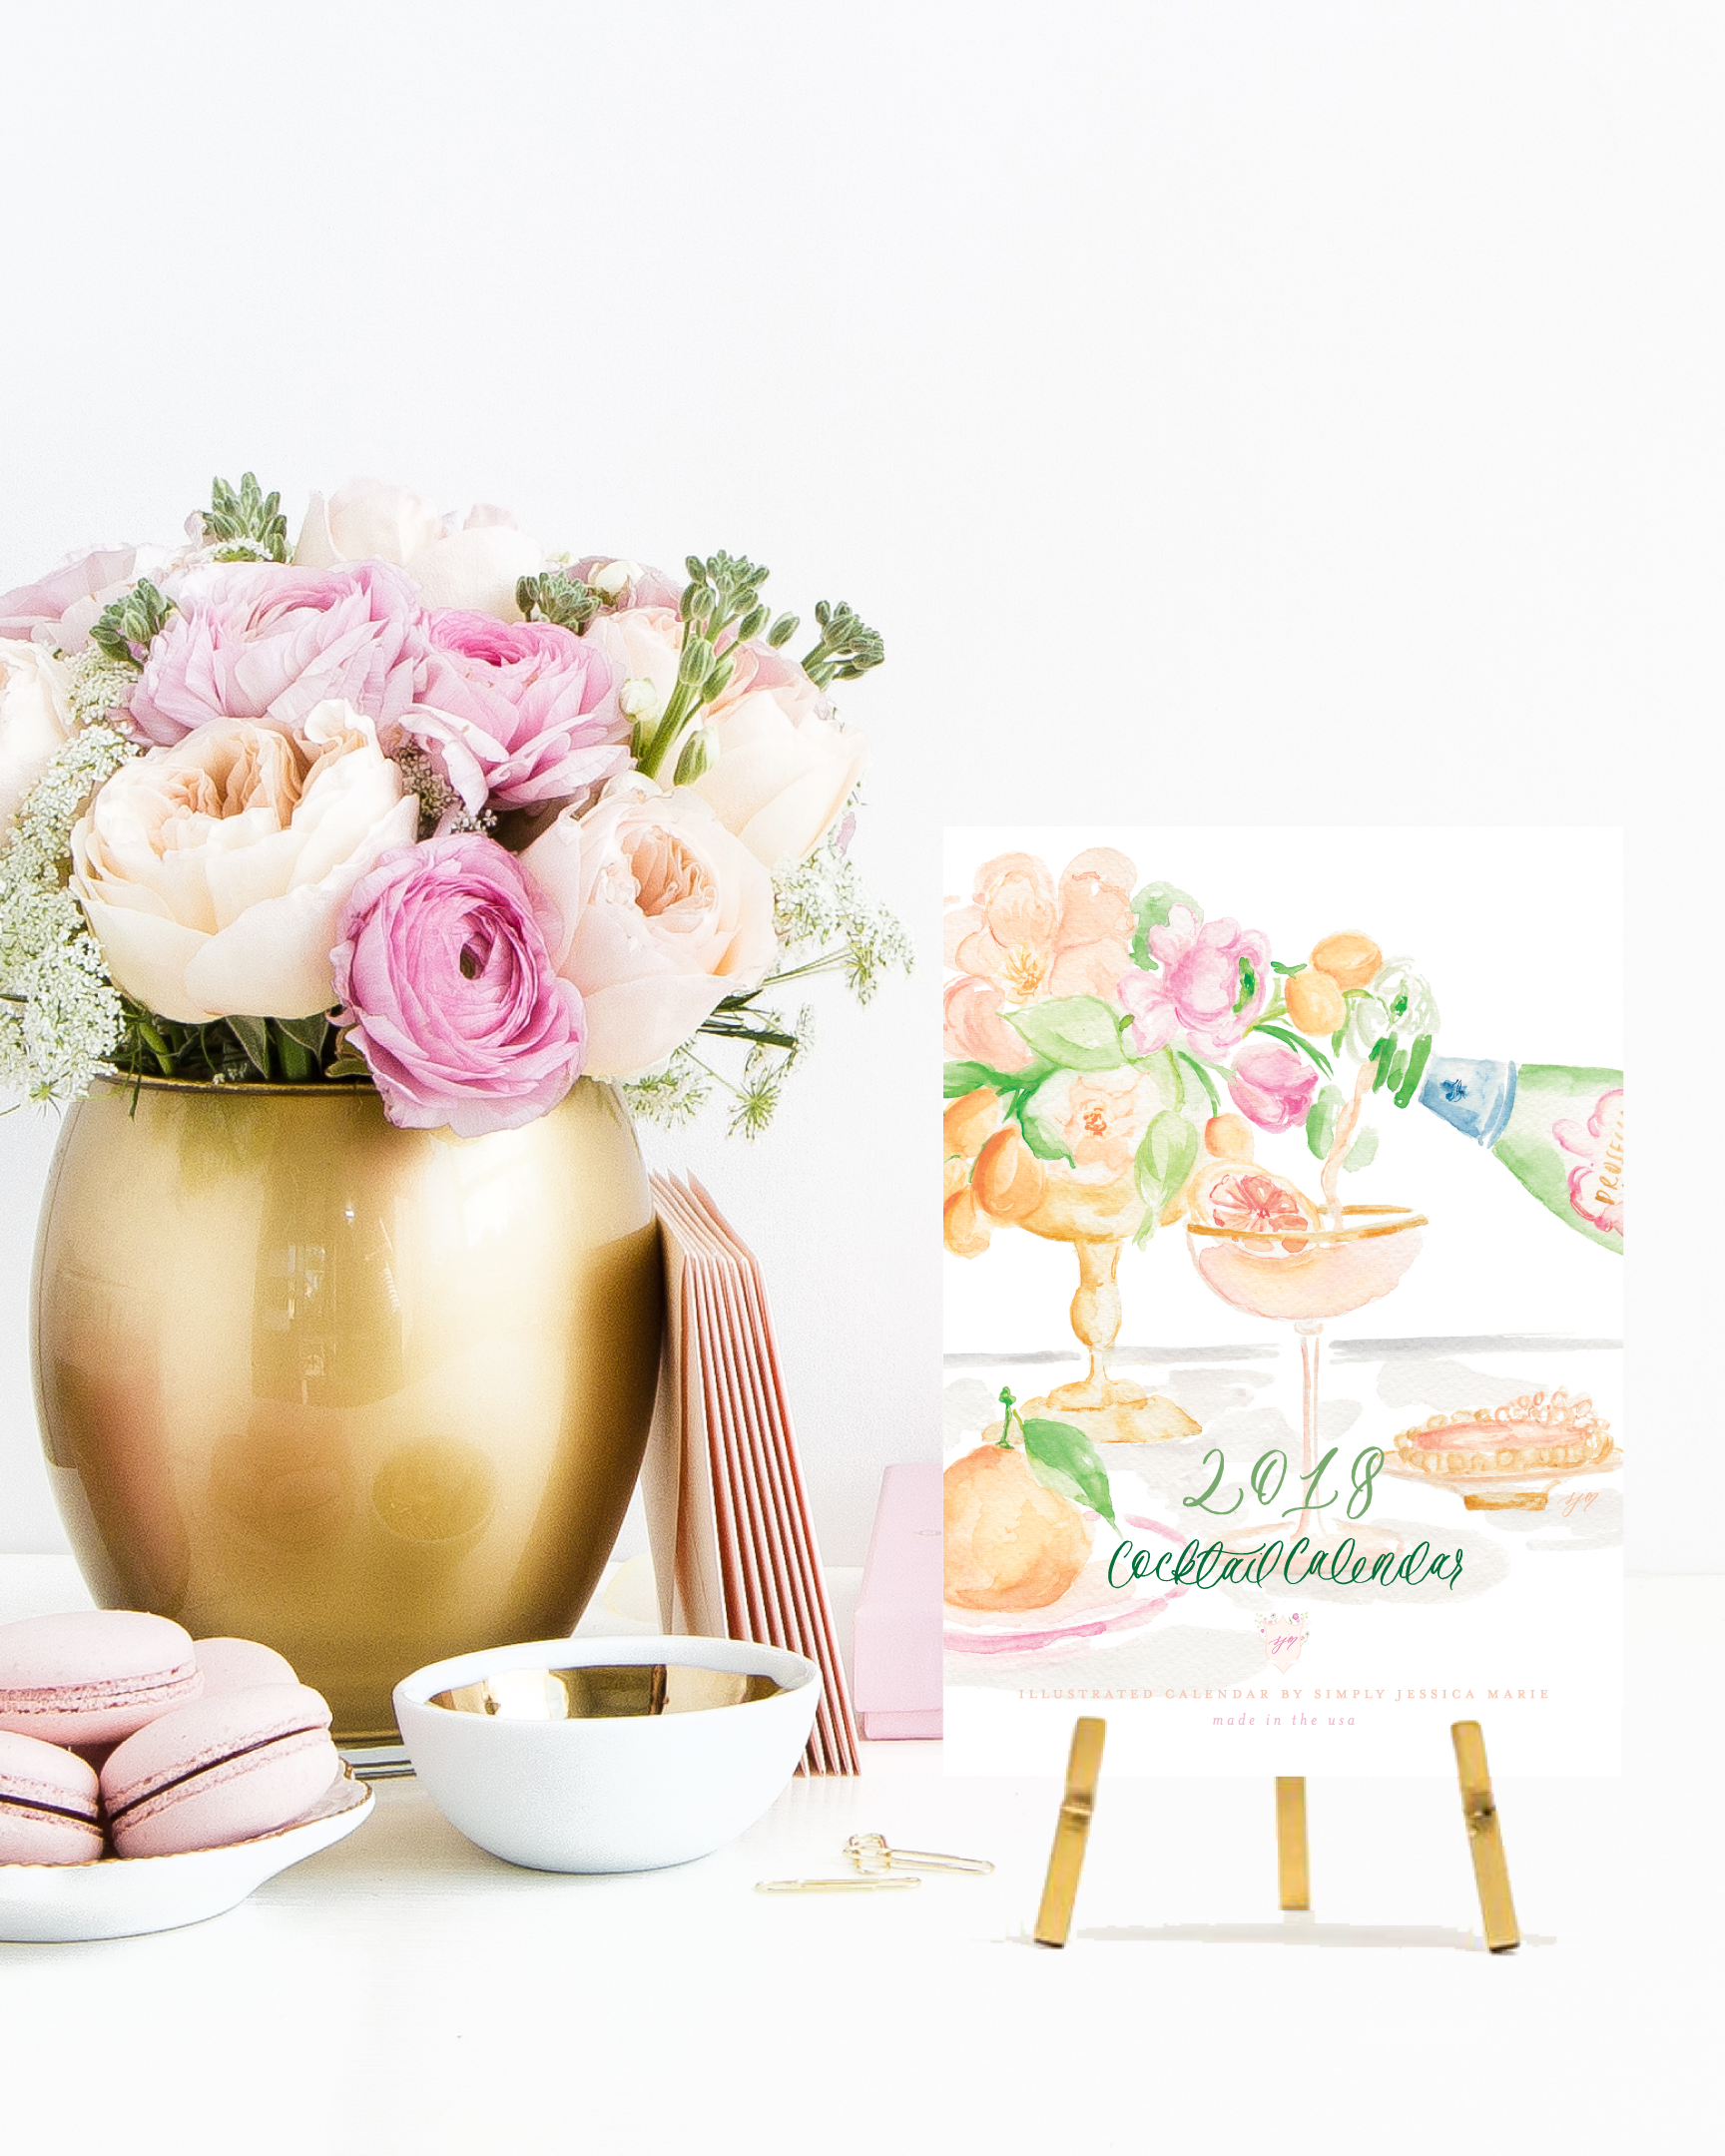 2018 Cocktail Calendar by Simply Jessica Marie | Watercolor Cocktail Calendar | Photo by SC Stockshop